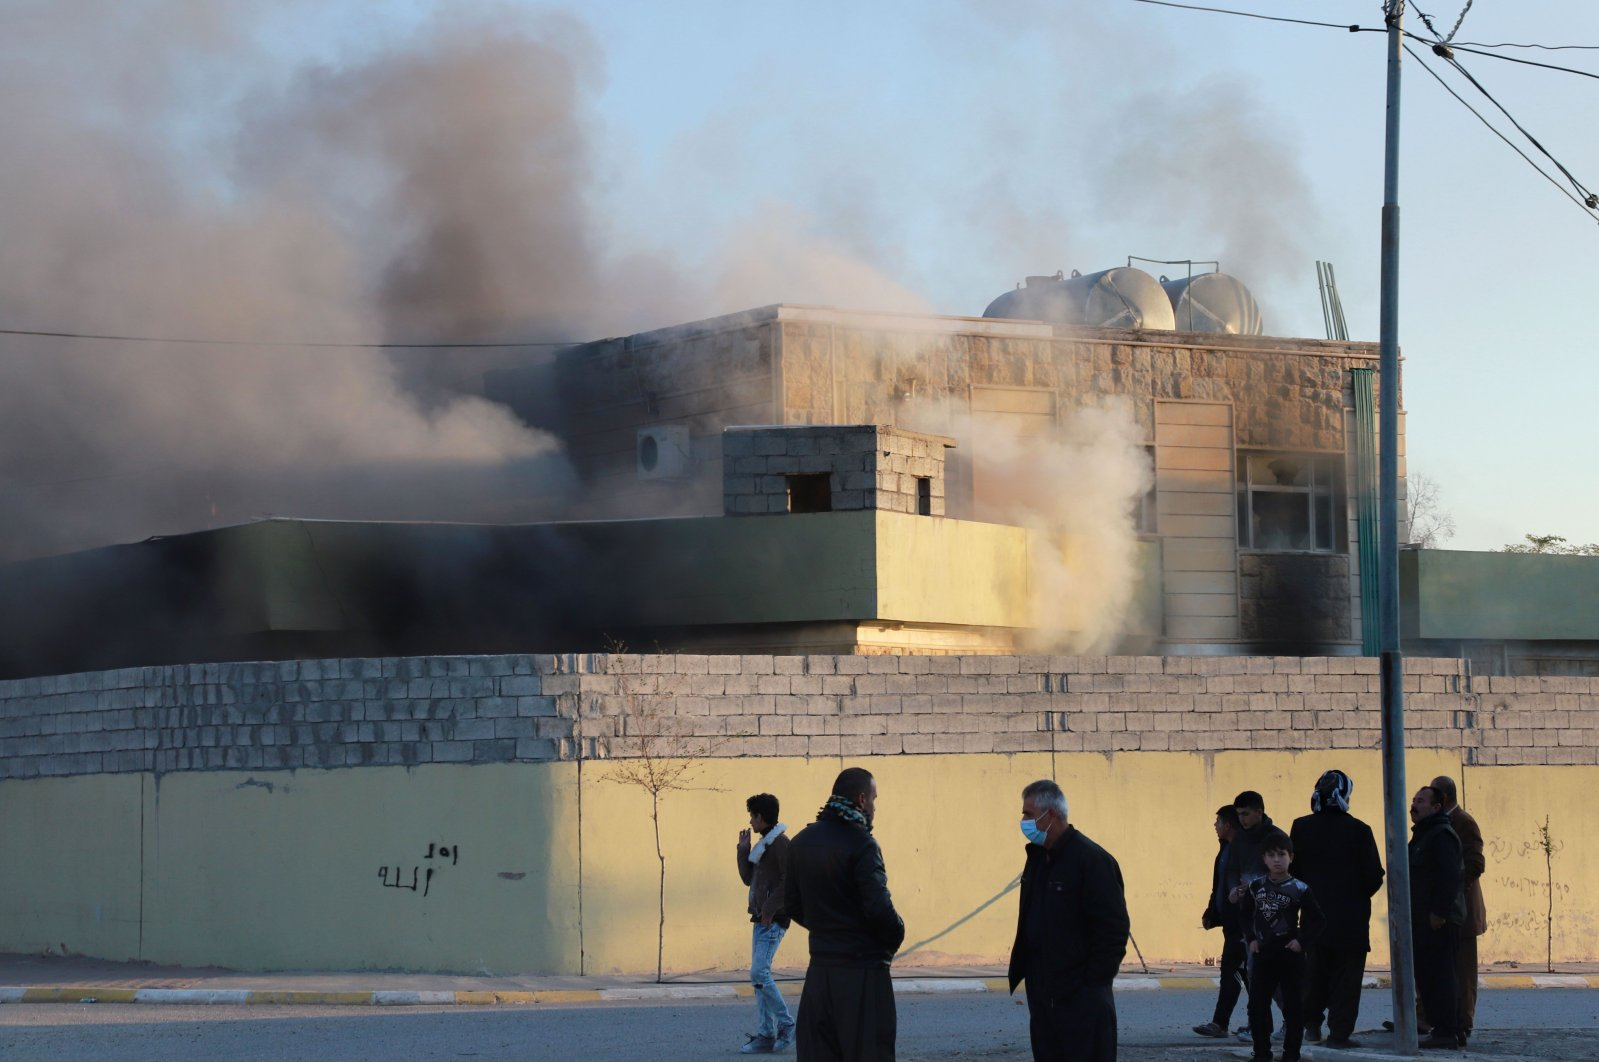 People stand outside a local police station set on fire by protesters in the town of Takia, about 60 kilometers southwest of the city of Sulaimaniyah, on Dec. 8, 2020. (AFP Photo)